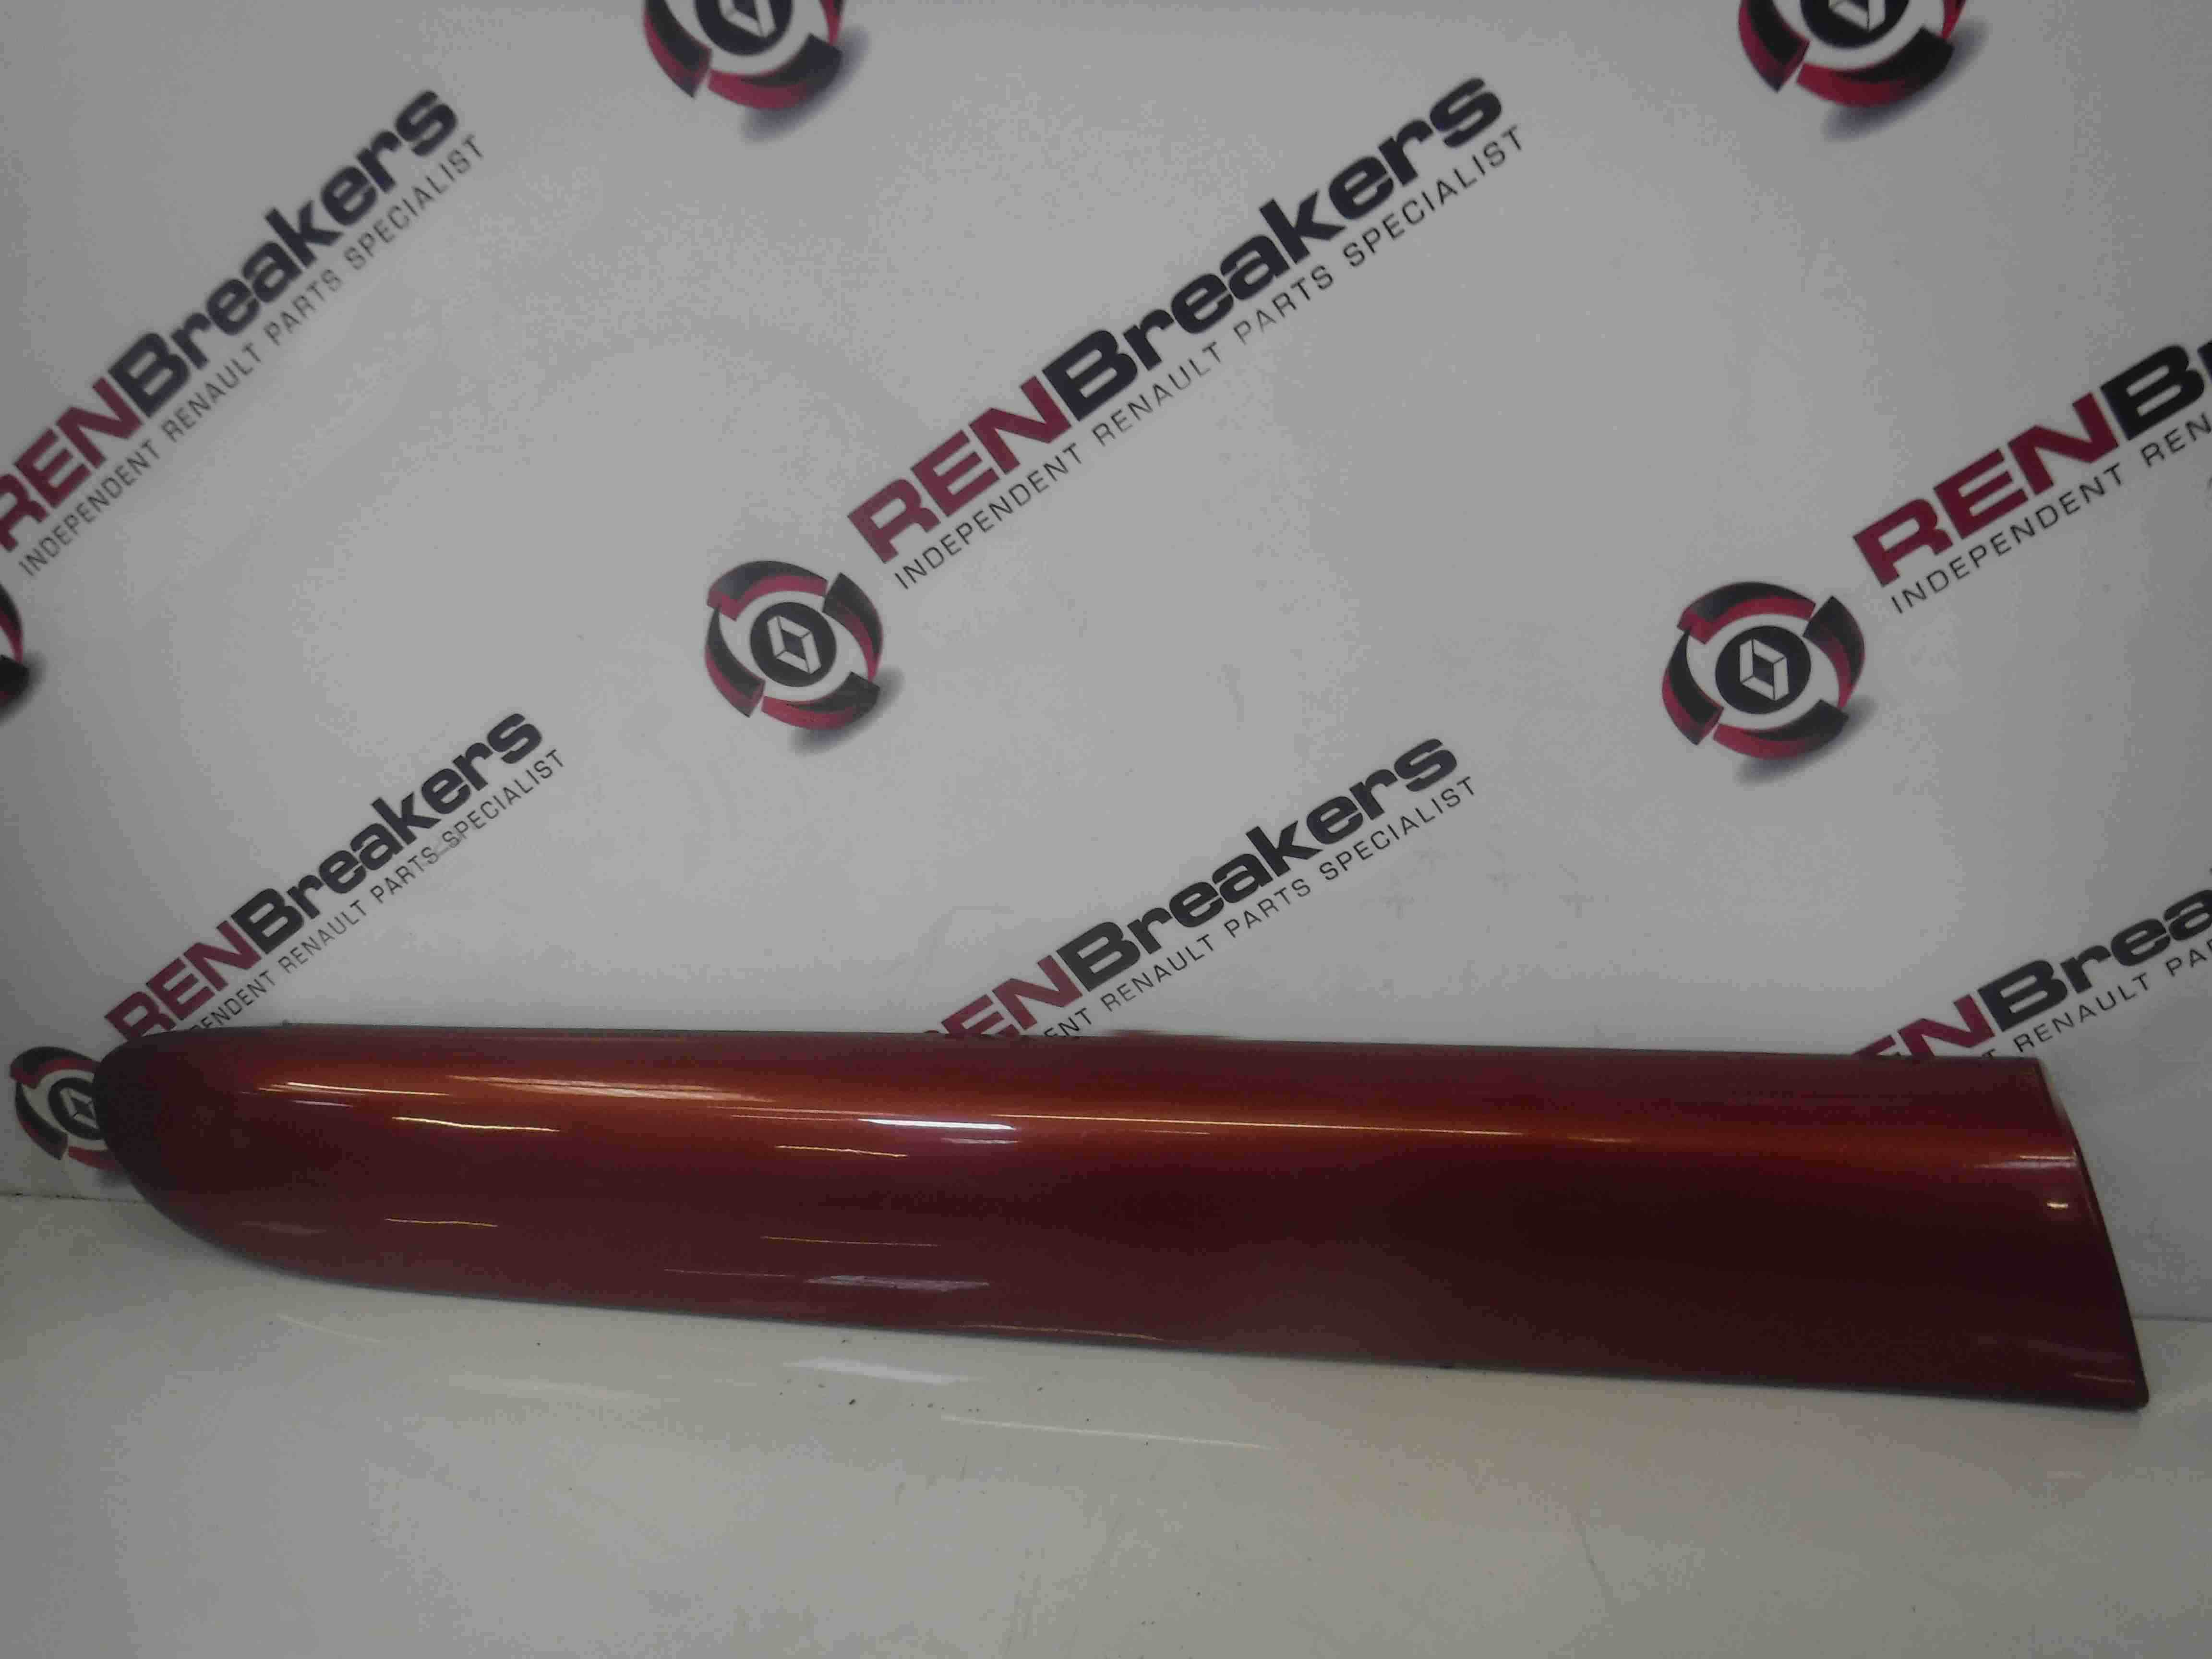 Renault Clio Sport 20012006 172 182 Drivers OSR Rear Moulding Red TEB76